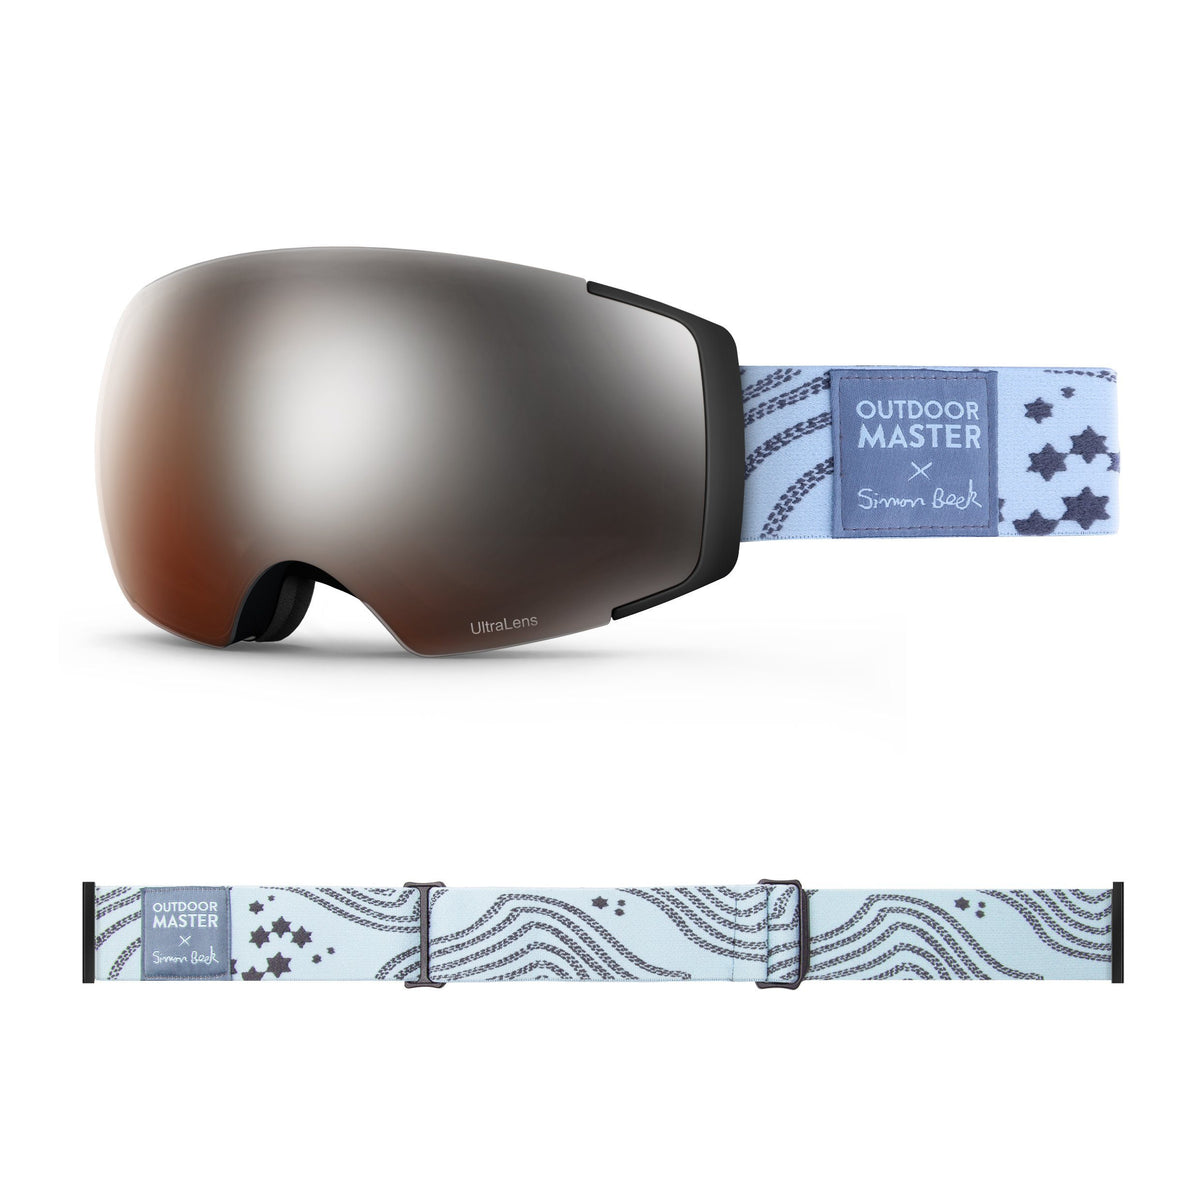 OutdoorMaster x Simon Beck Ski Goggles Pro Series - Snowshoeing Art Limited Edition OutdoorMaster LutraLens VLT 13% Optimized Orange with REVO Silver Star Road-Lightsteelblue